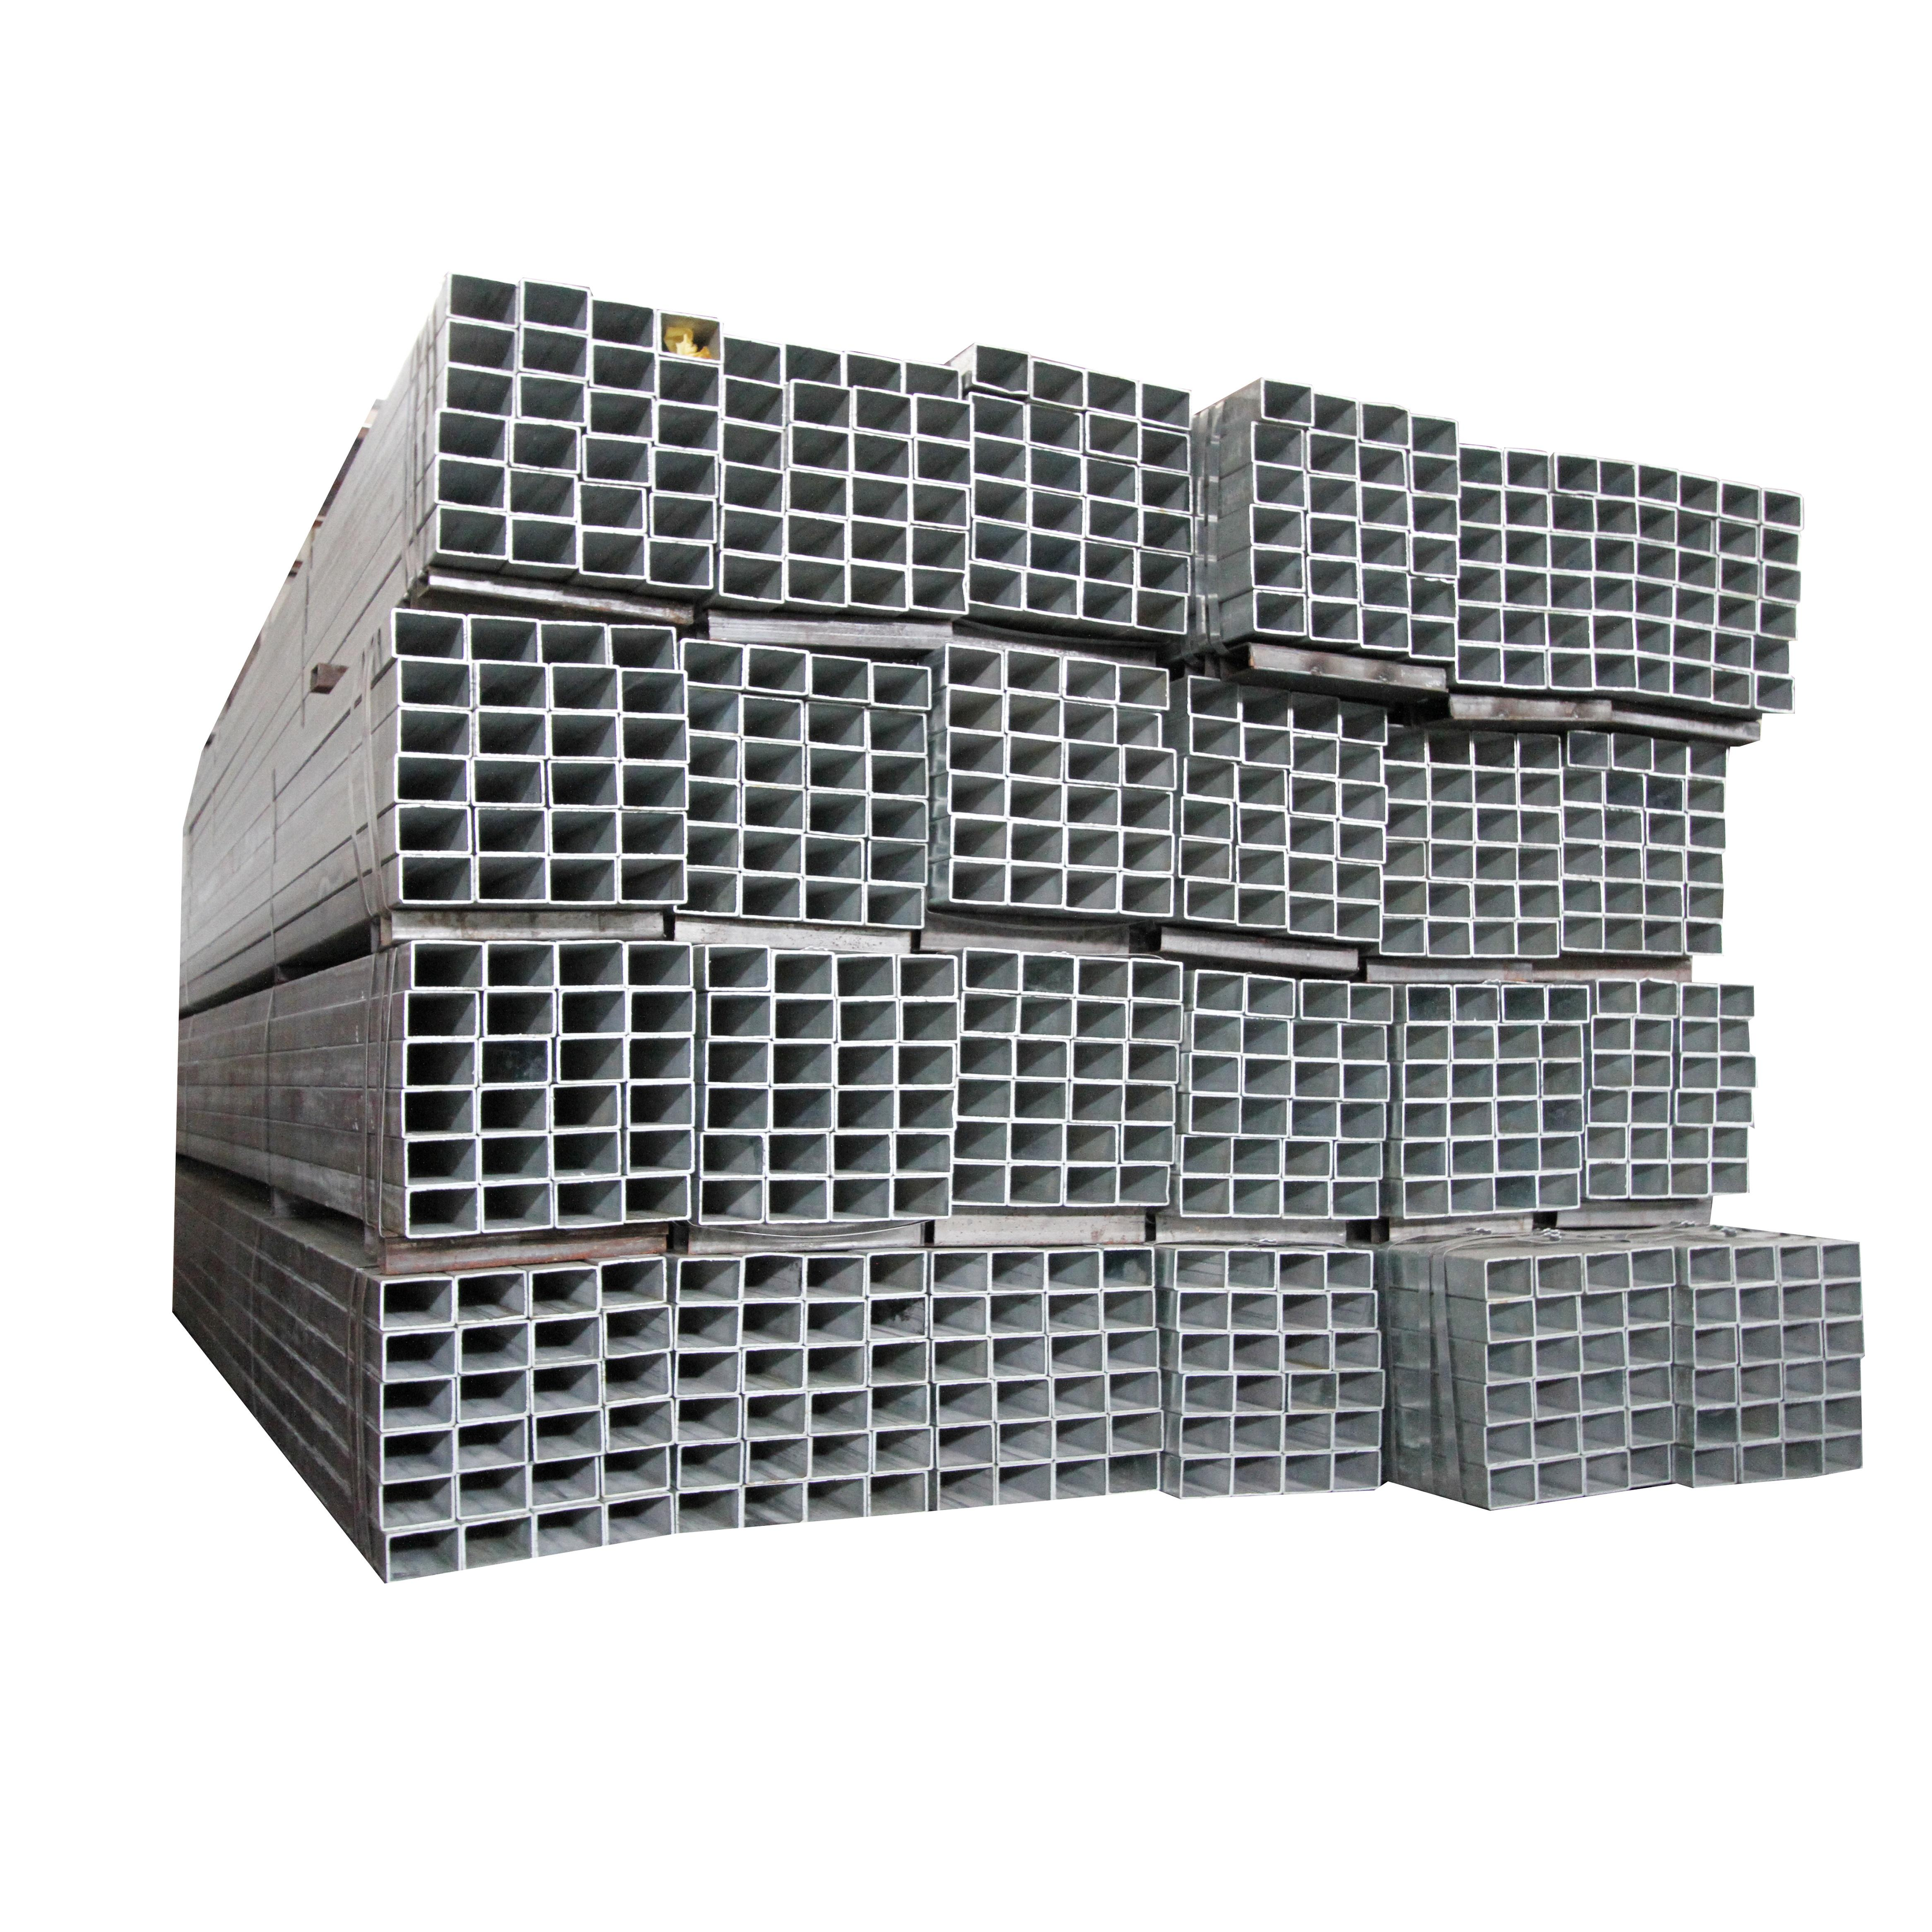 Galvanized Square Culvert Pipe Square Tube For Galvanized Steel Grate Square Twisted Cross Bar